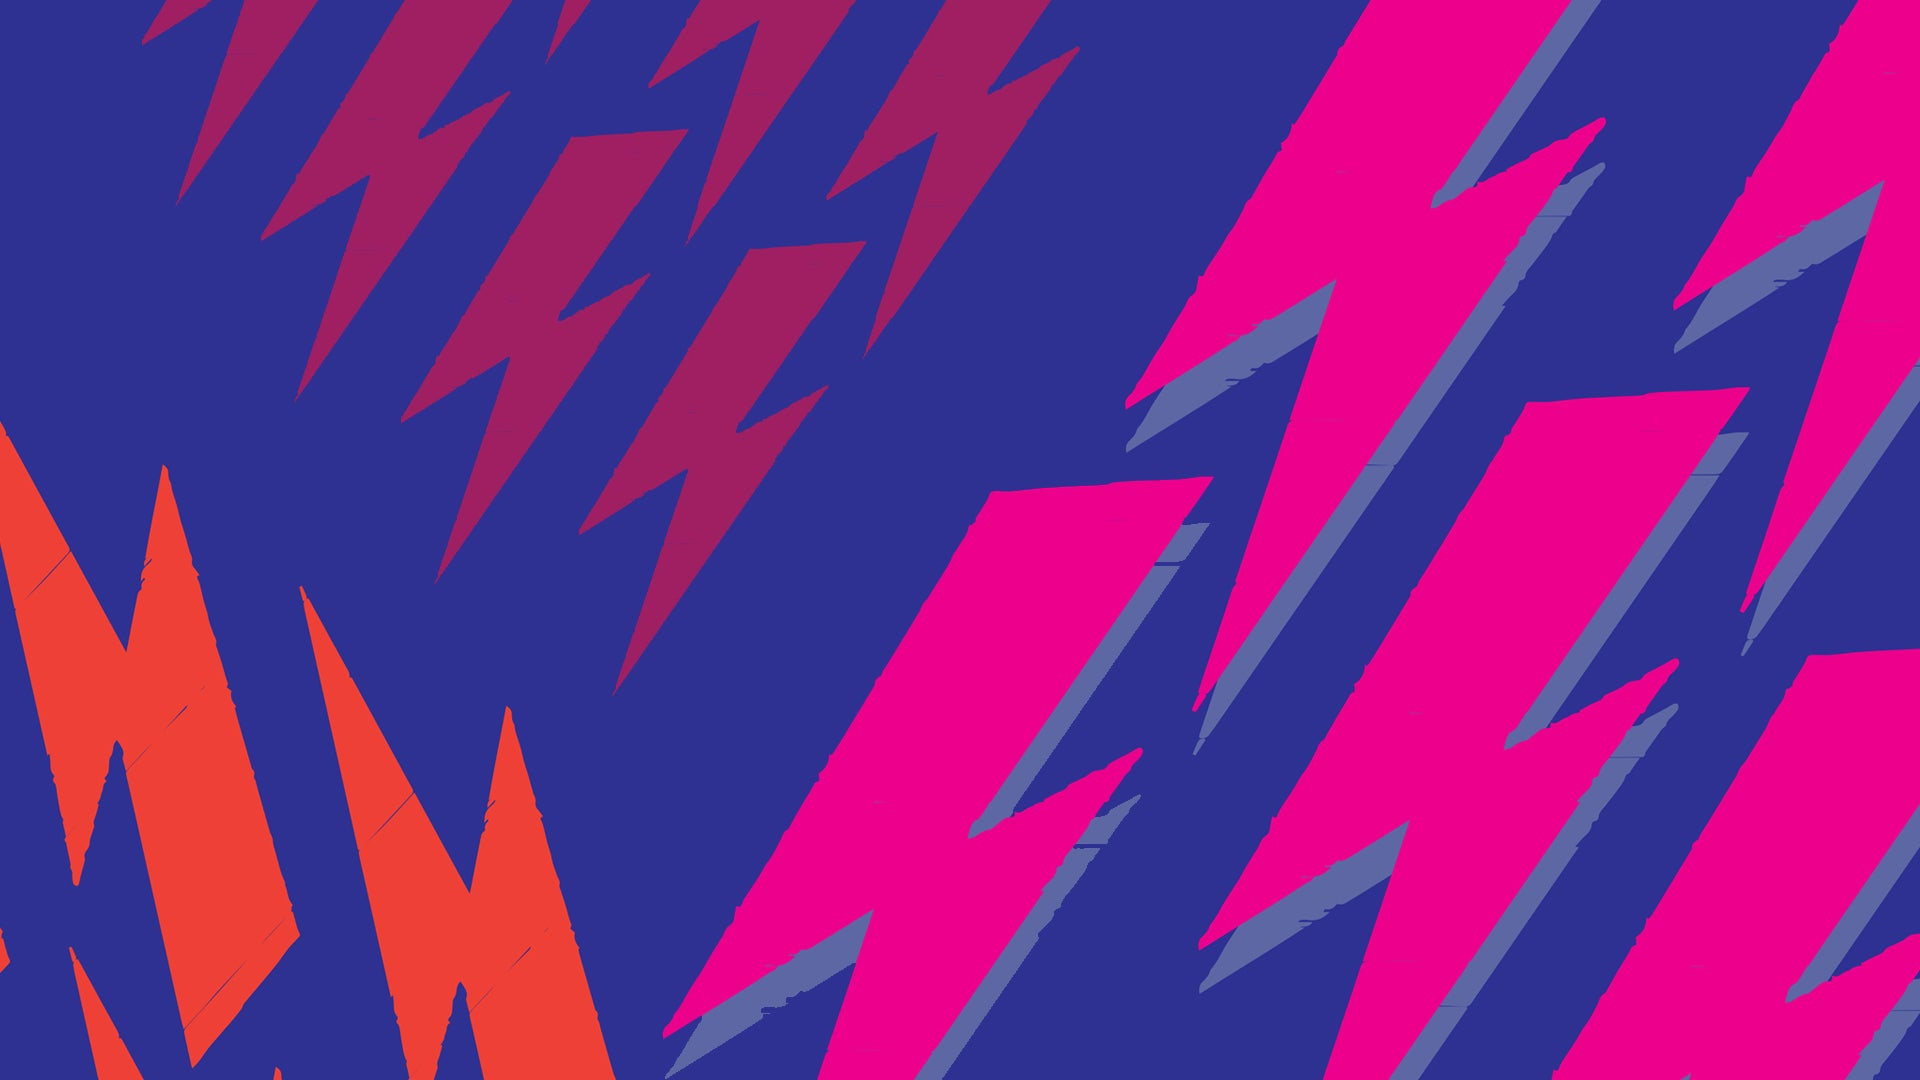 David Bowie Lightning bolts, free desktop download, Alarmclock Design LLC